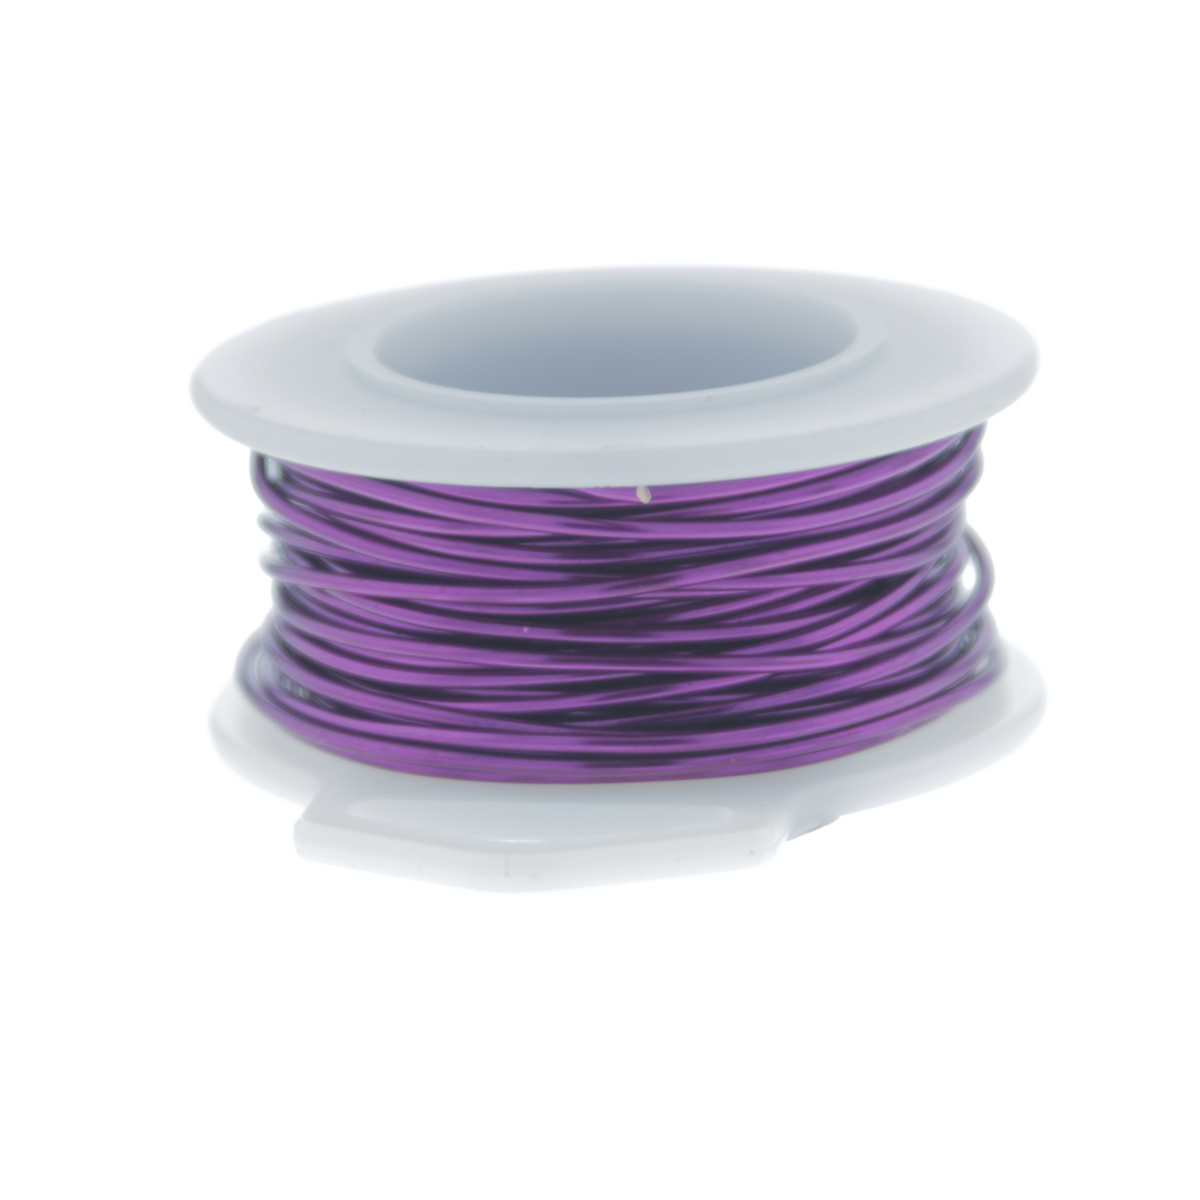 22 Gauge Round Silver Plated Amethyst Copper Craft Wire - 30 ft